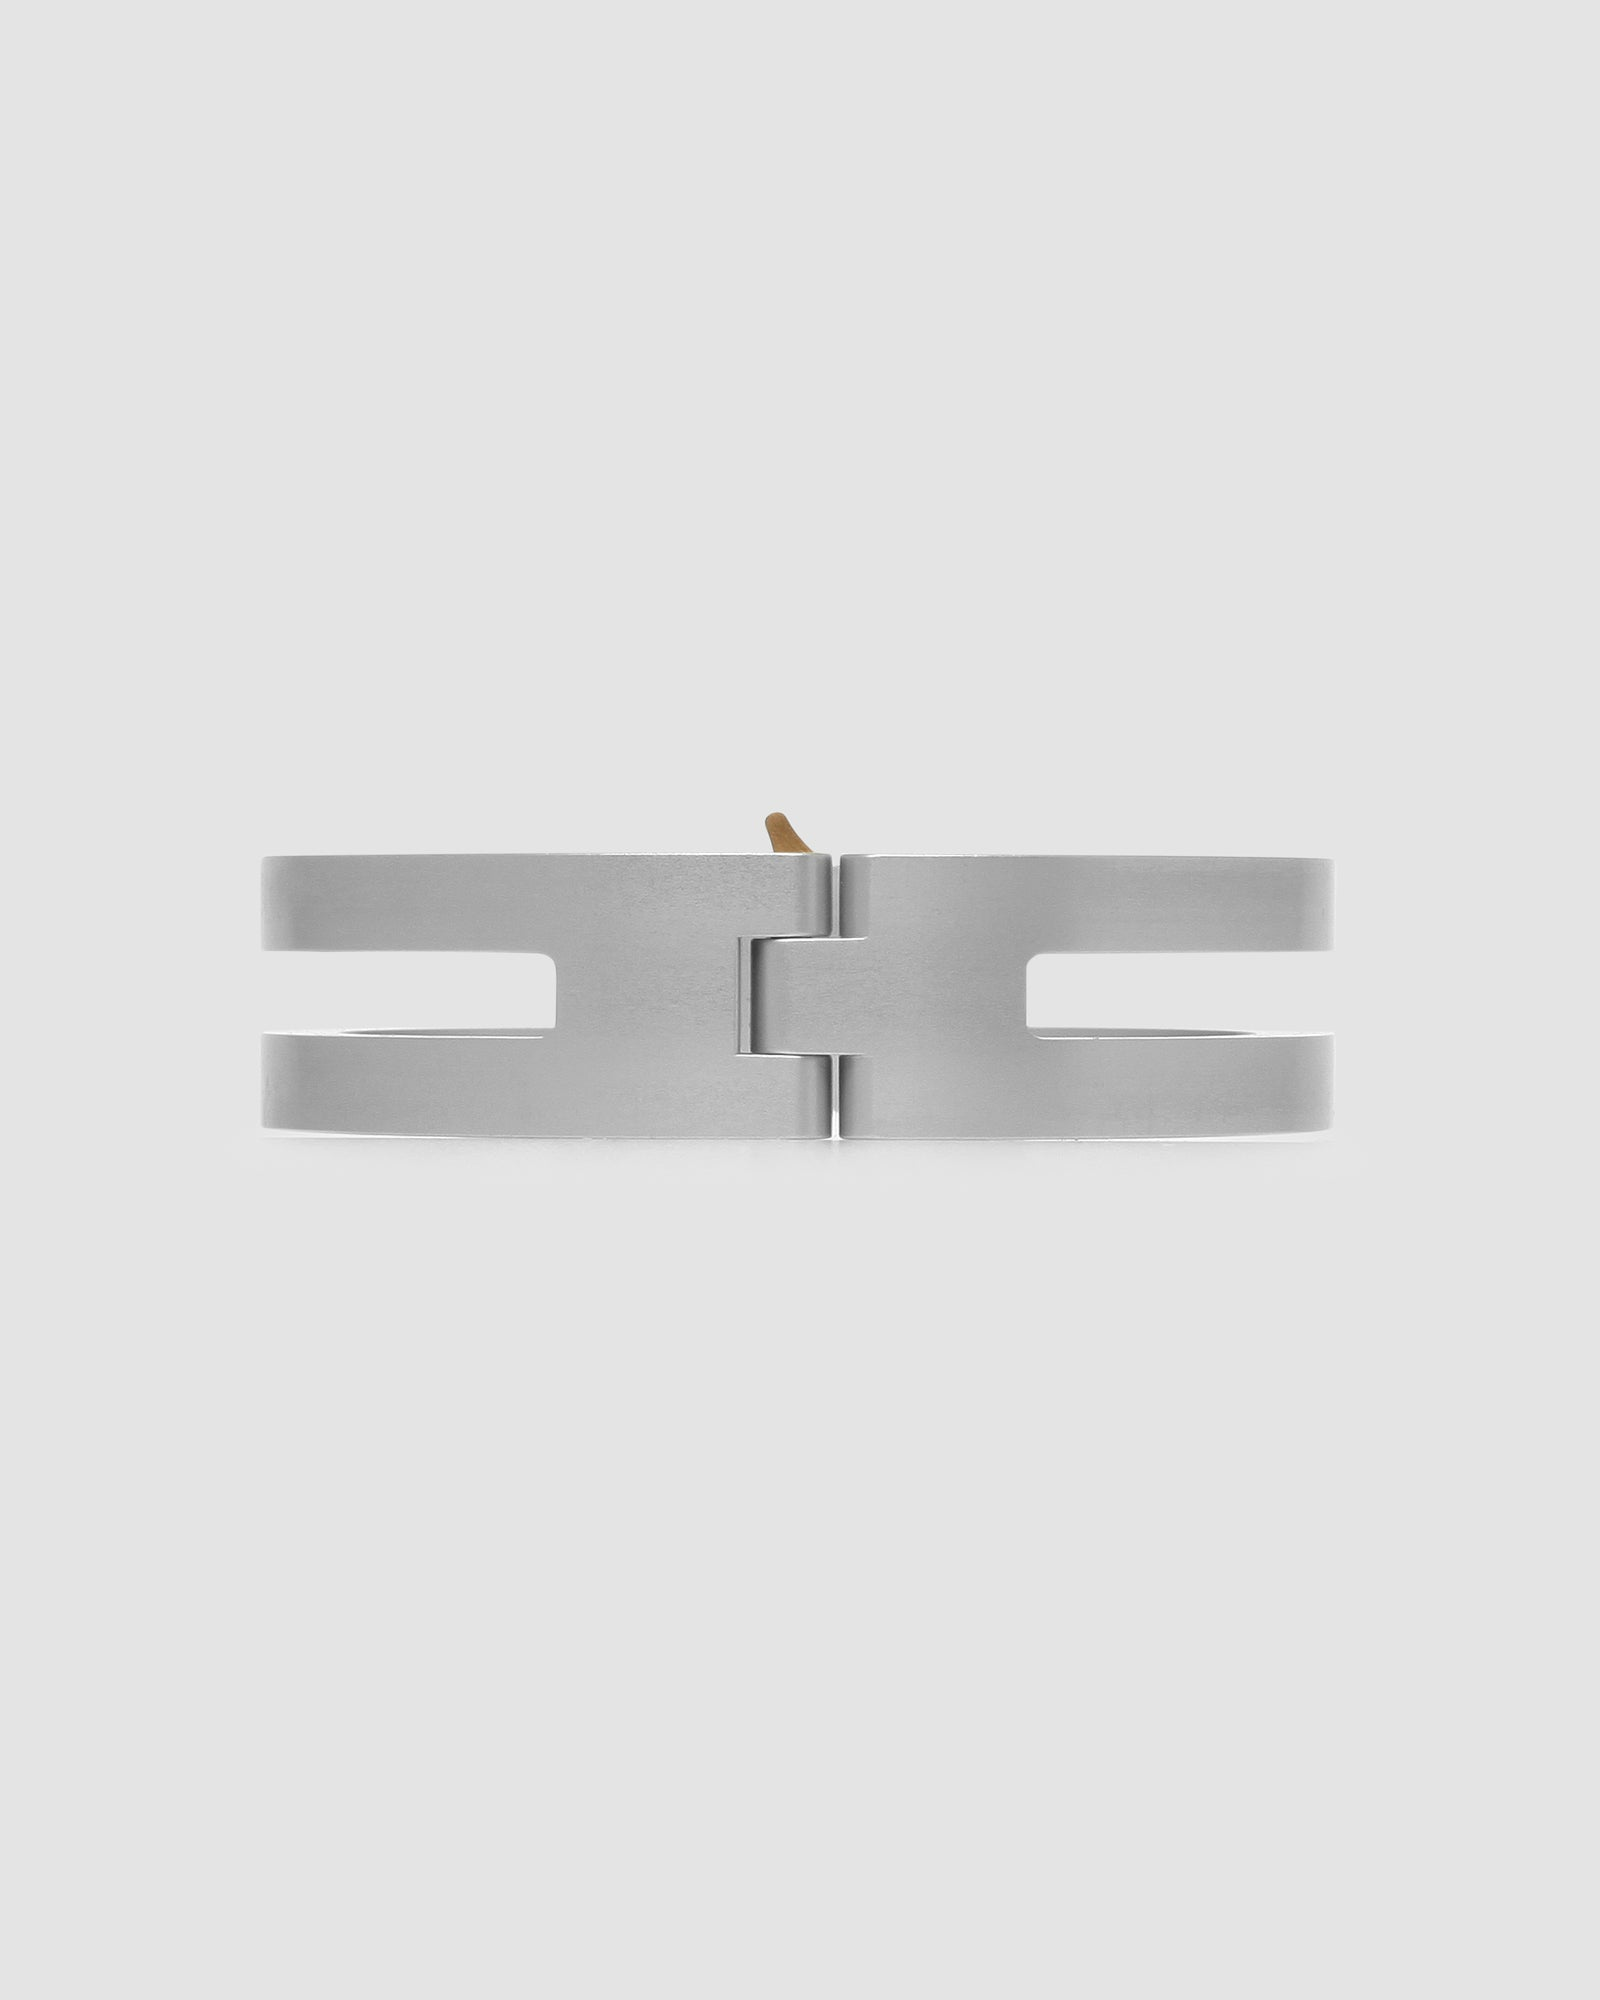 1017 ALYX 9SM | ROLLERCOASTER TRACK BRACELET | Jewellery | Accessories, Google Shopping, Man, S19, S20, Silver, Woman